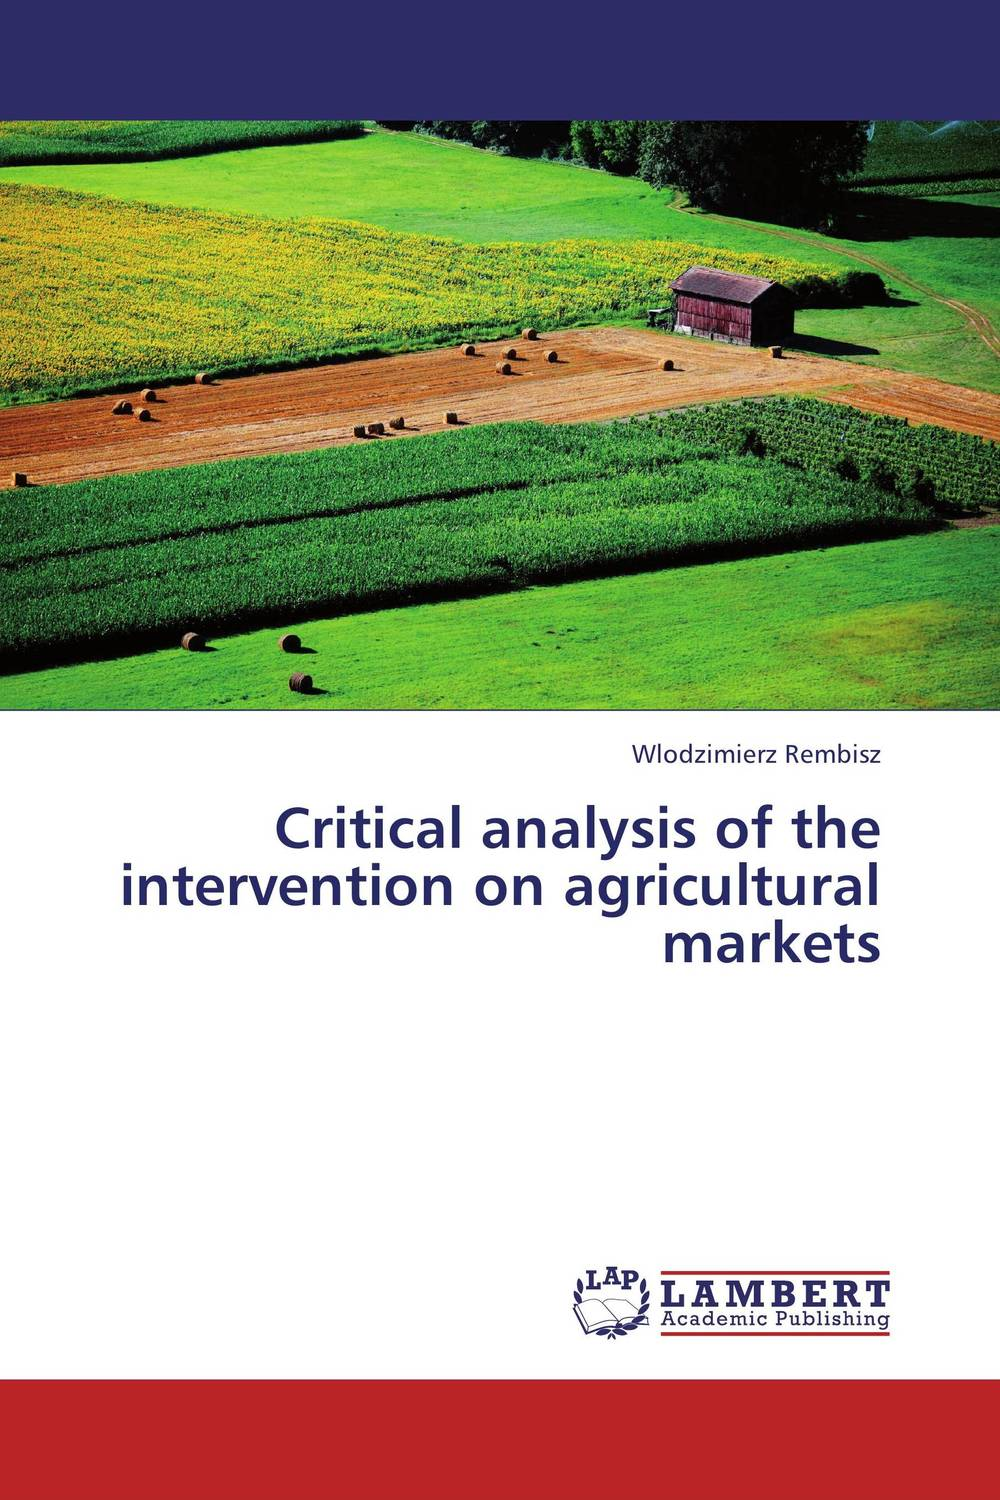 Critical analysis of the intervention on agricultural markets